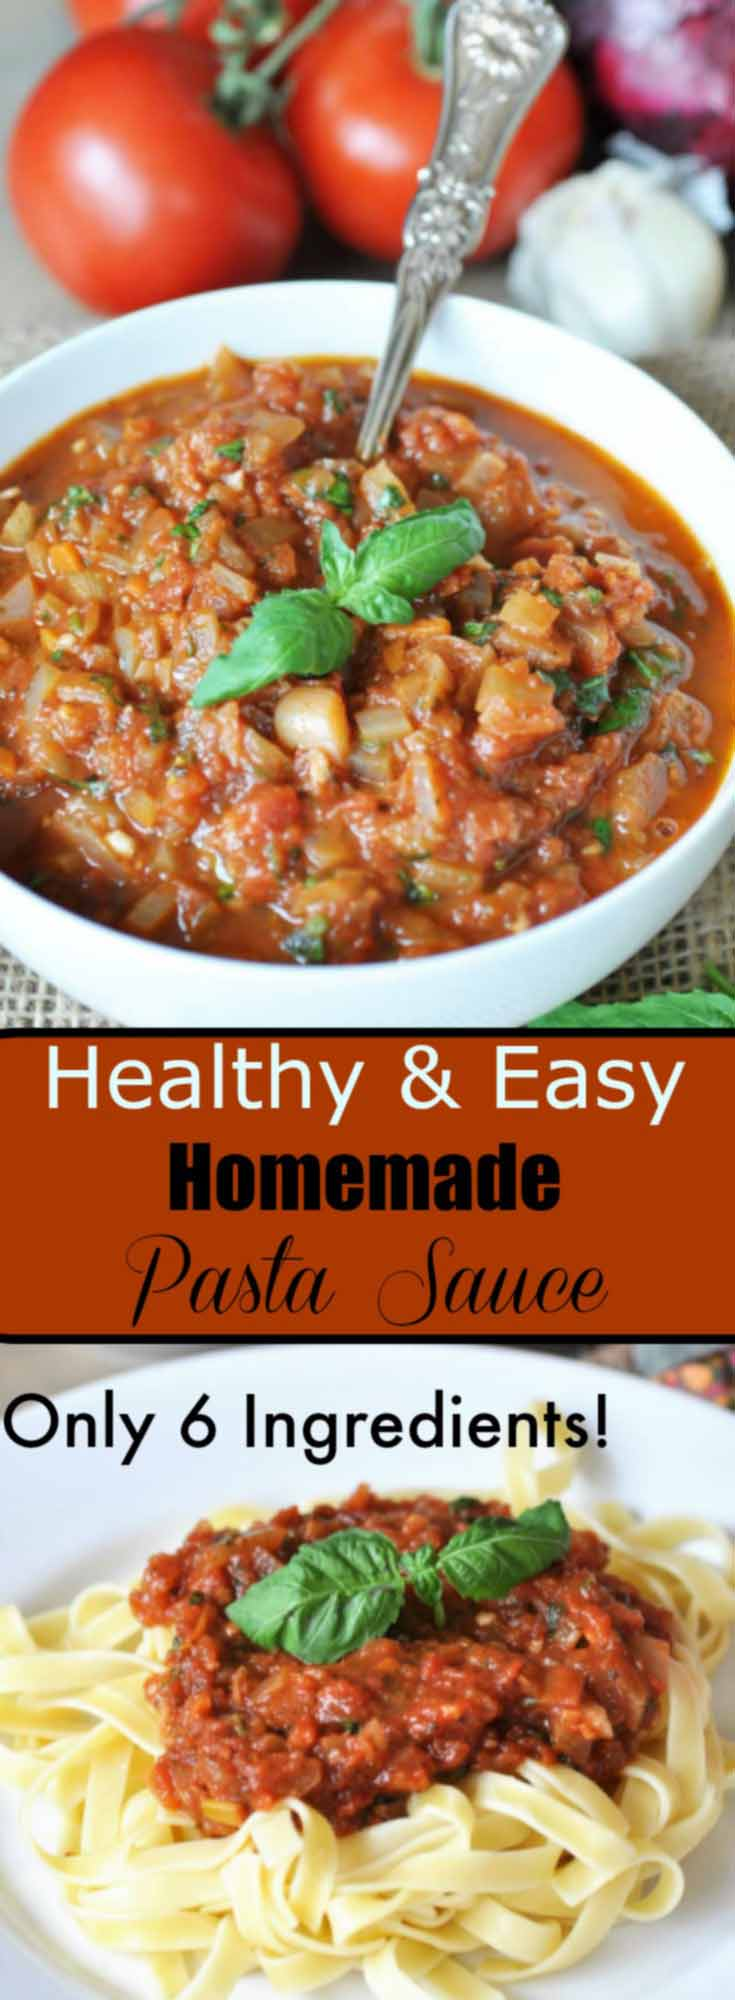 Healthy & Easy Homemade Pasta Sauce! This recipe is a family favorite and is ready in under 40 minutes! vegan and gluten-free. www.veganosity.com